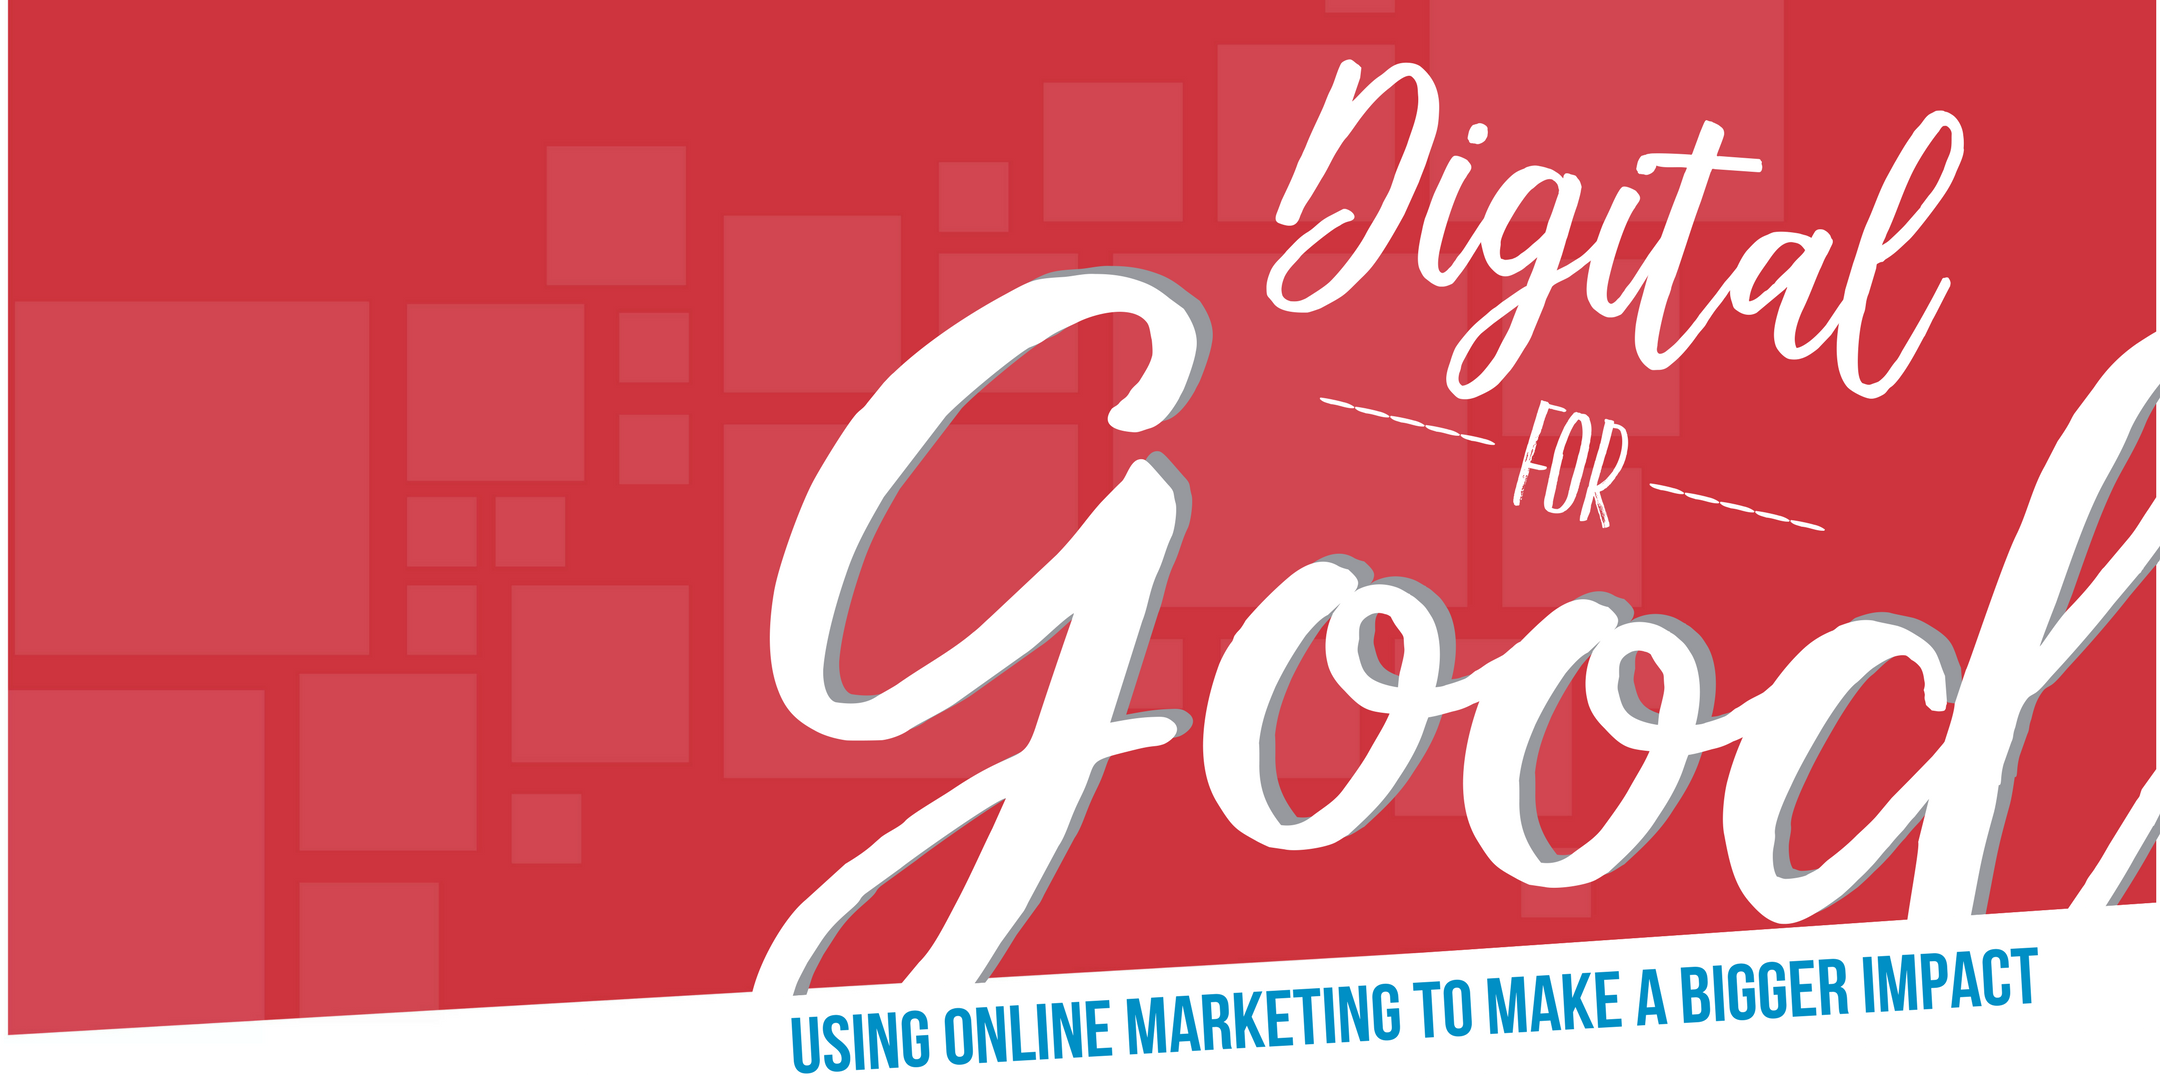 Digital for Good: Using Online Marketing to Make a Bigger Impact